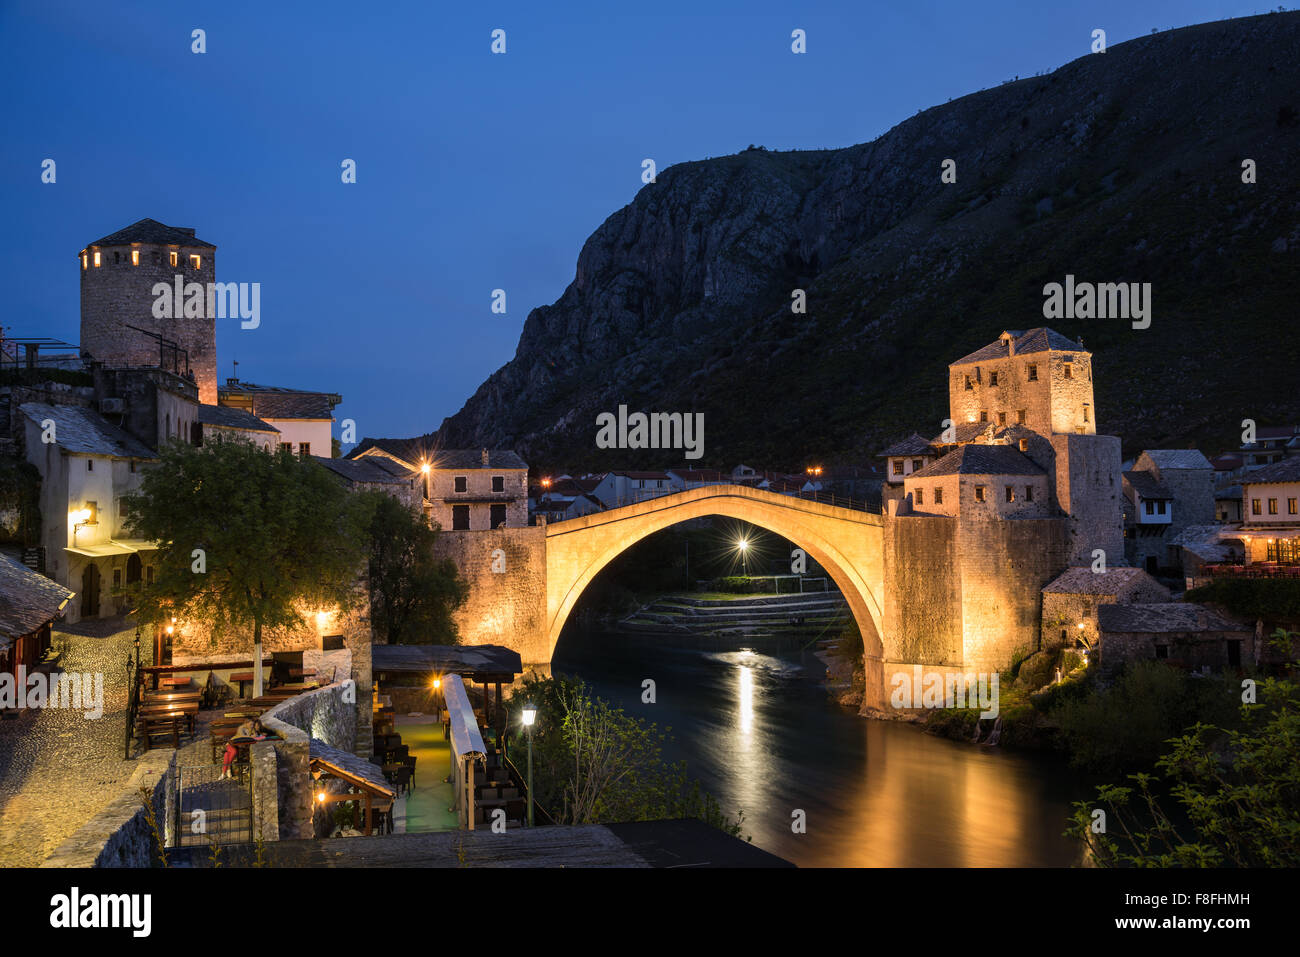 The Old Bridge in Mostar at night, Bosnia and Herzegovina - Stock Image